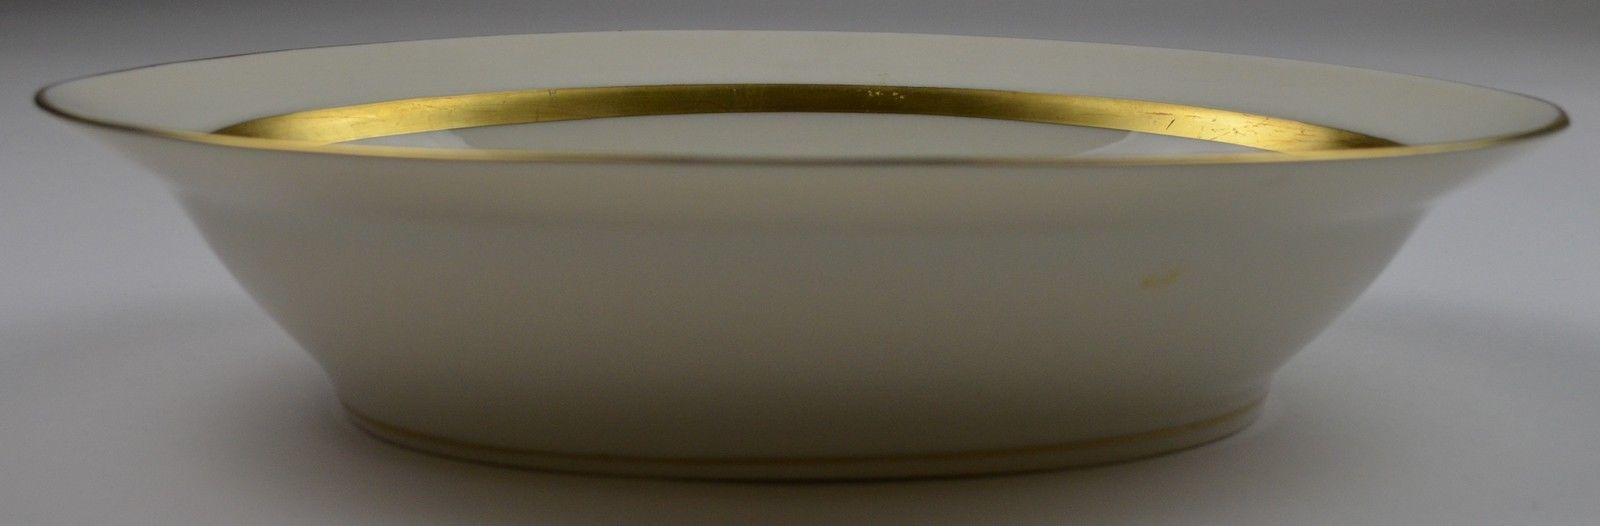 """Vintage Theodore Haviland China Kenmore Pattern Oval Vegetable Bowl 9.625"""" Round - $49.99"""